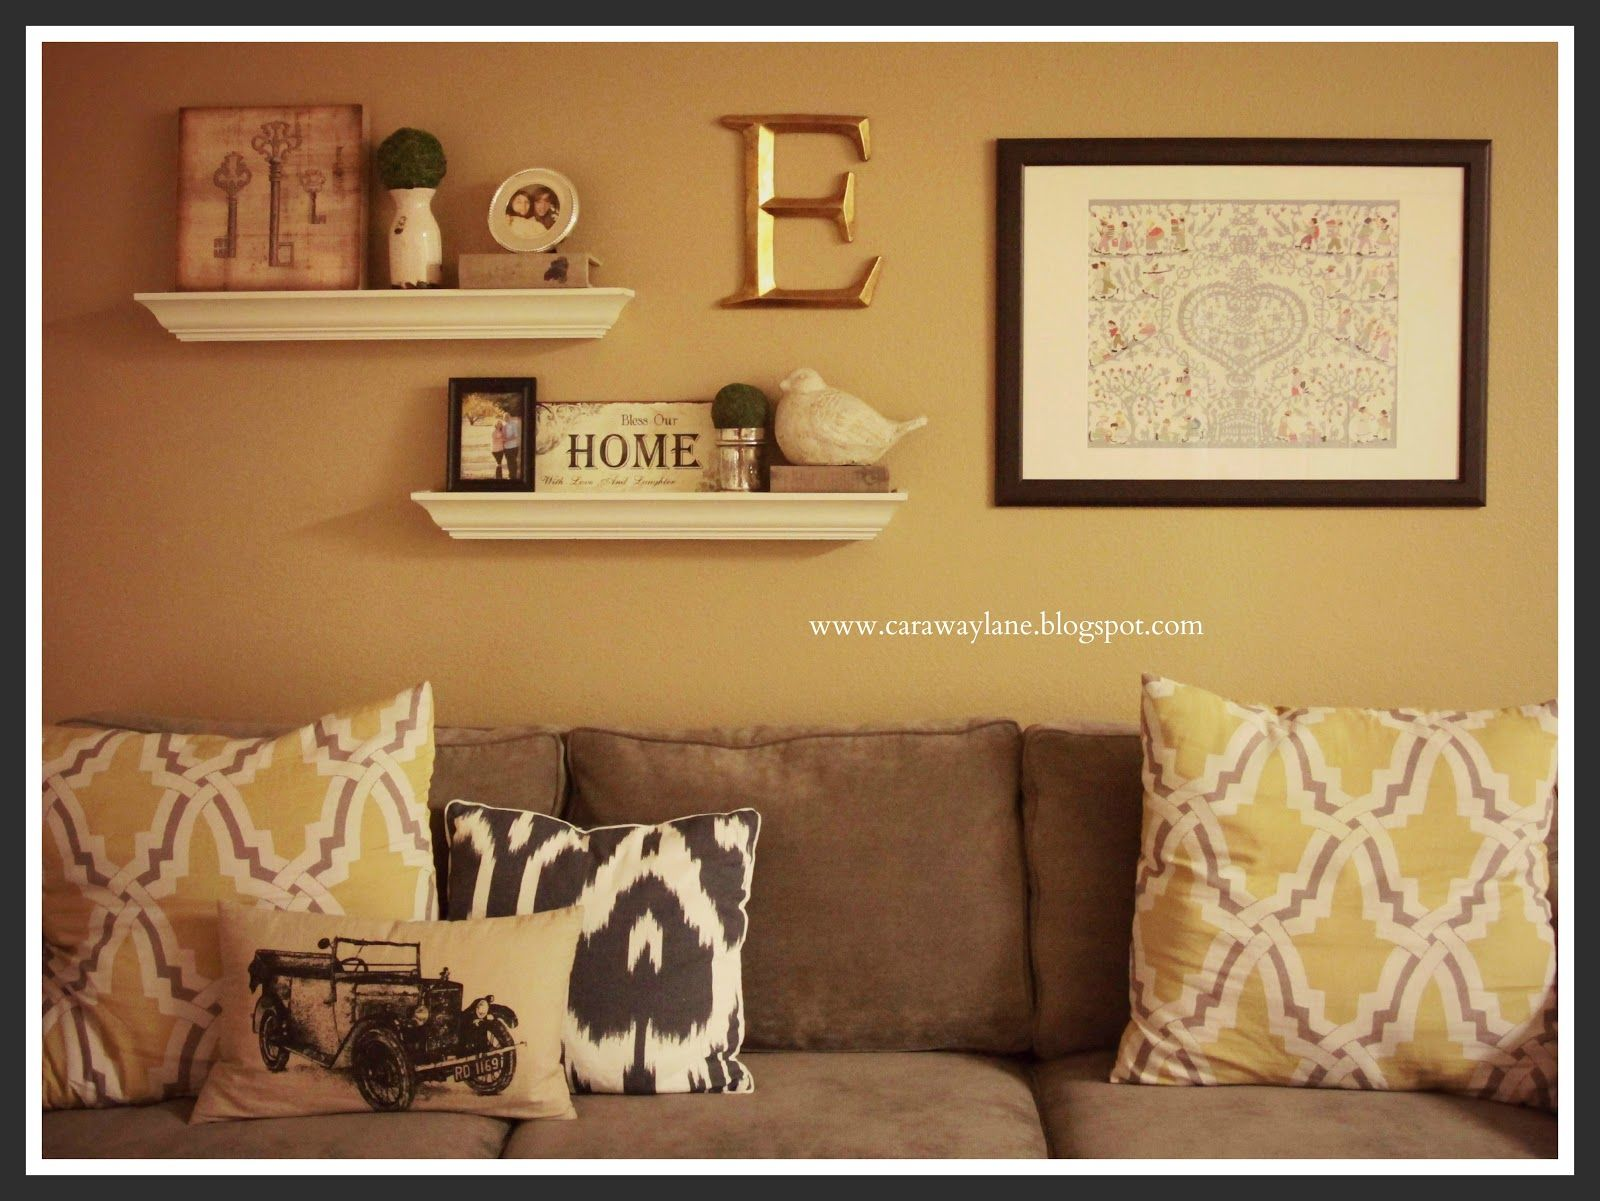 Decorate Over A Sofa Above The Couch Wall Decor Home